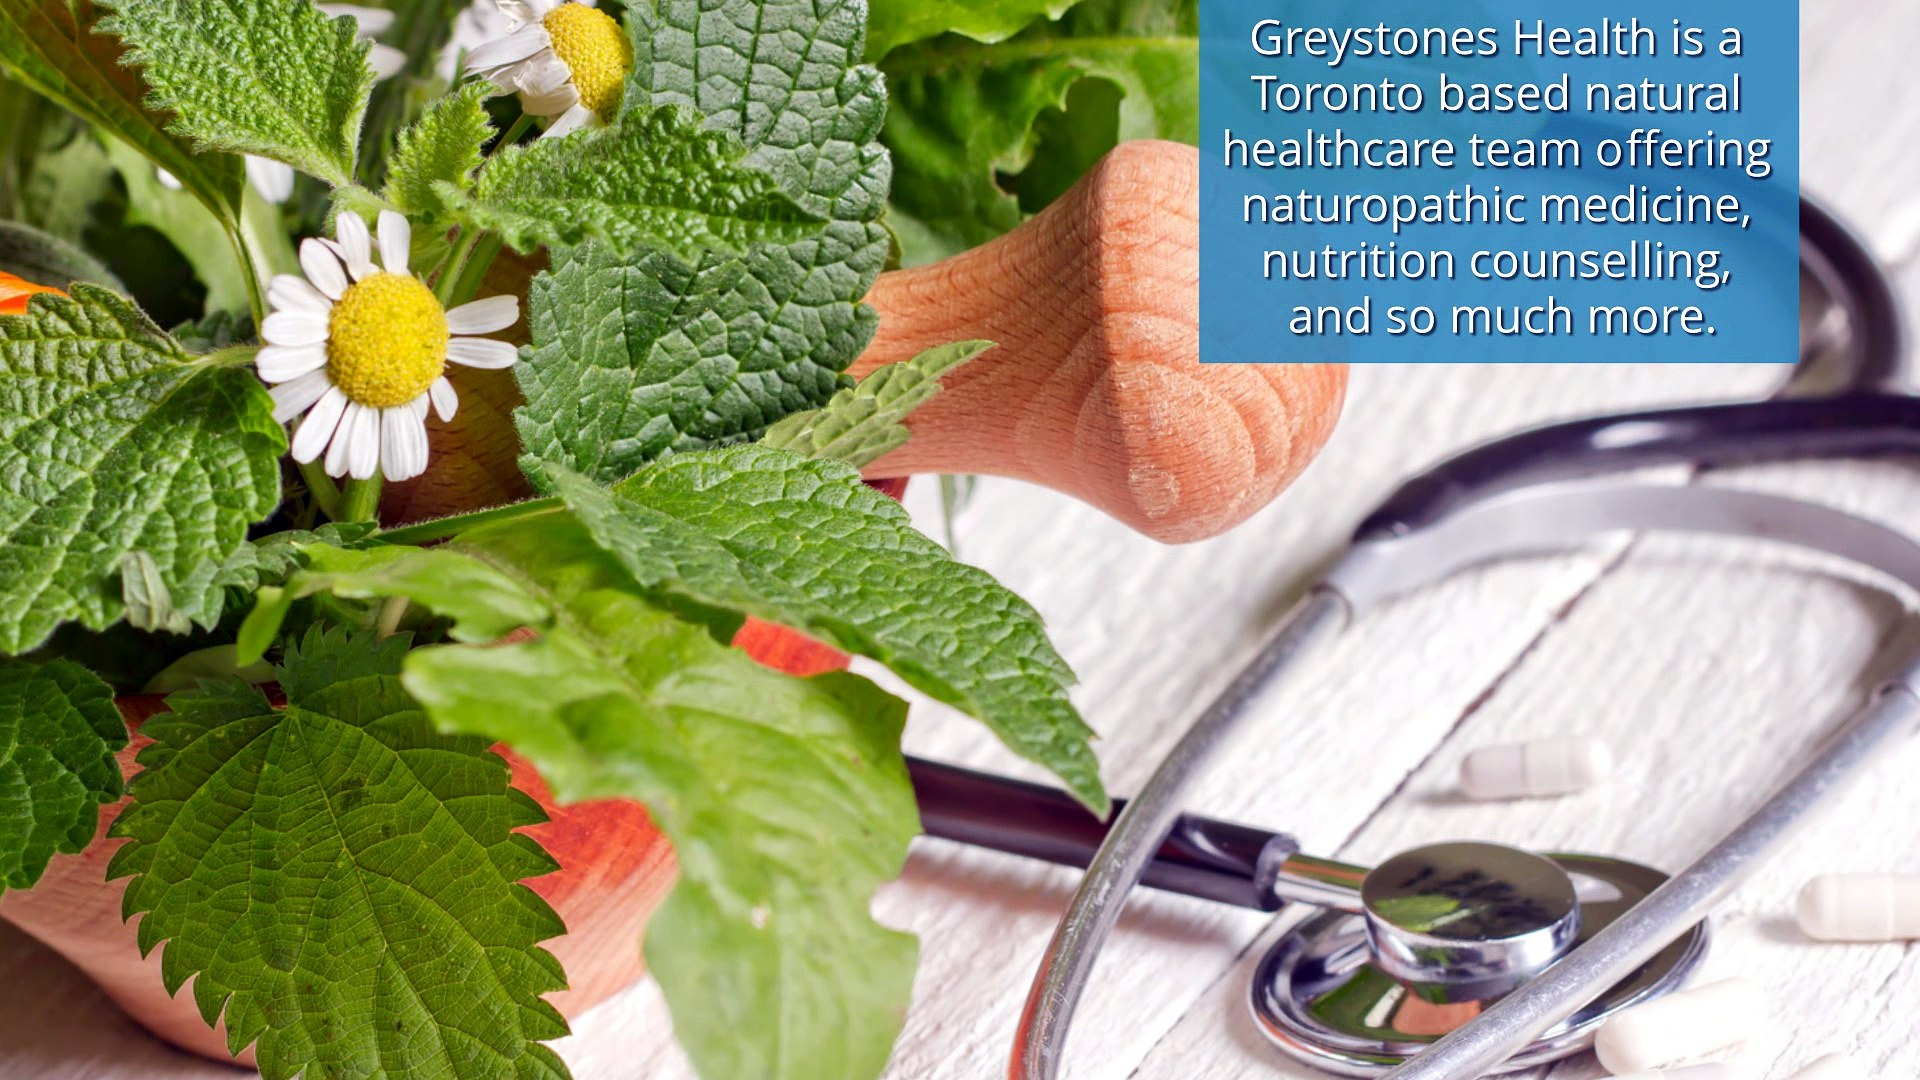 Naturopathic Medicine & Nutrition Counselling - Greystones Health